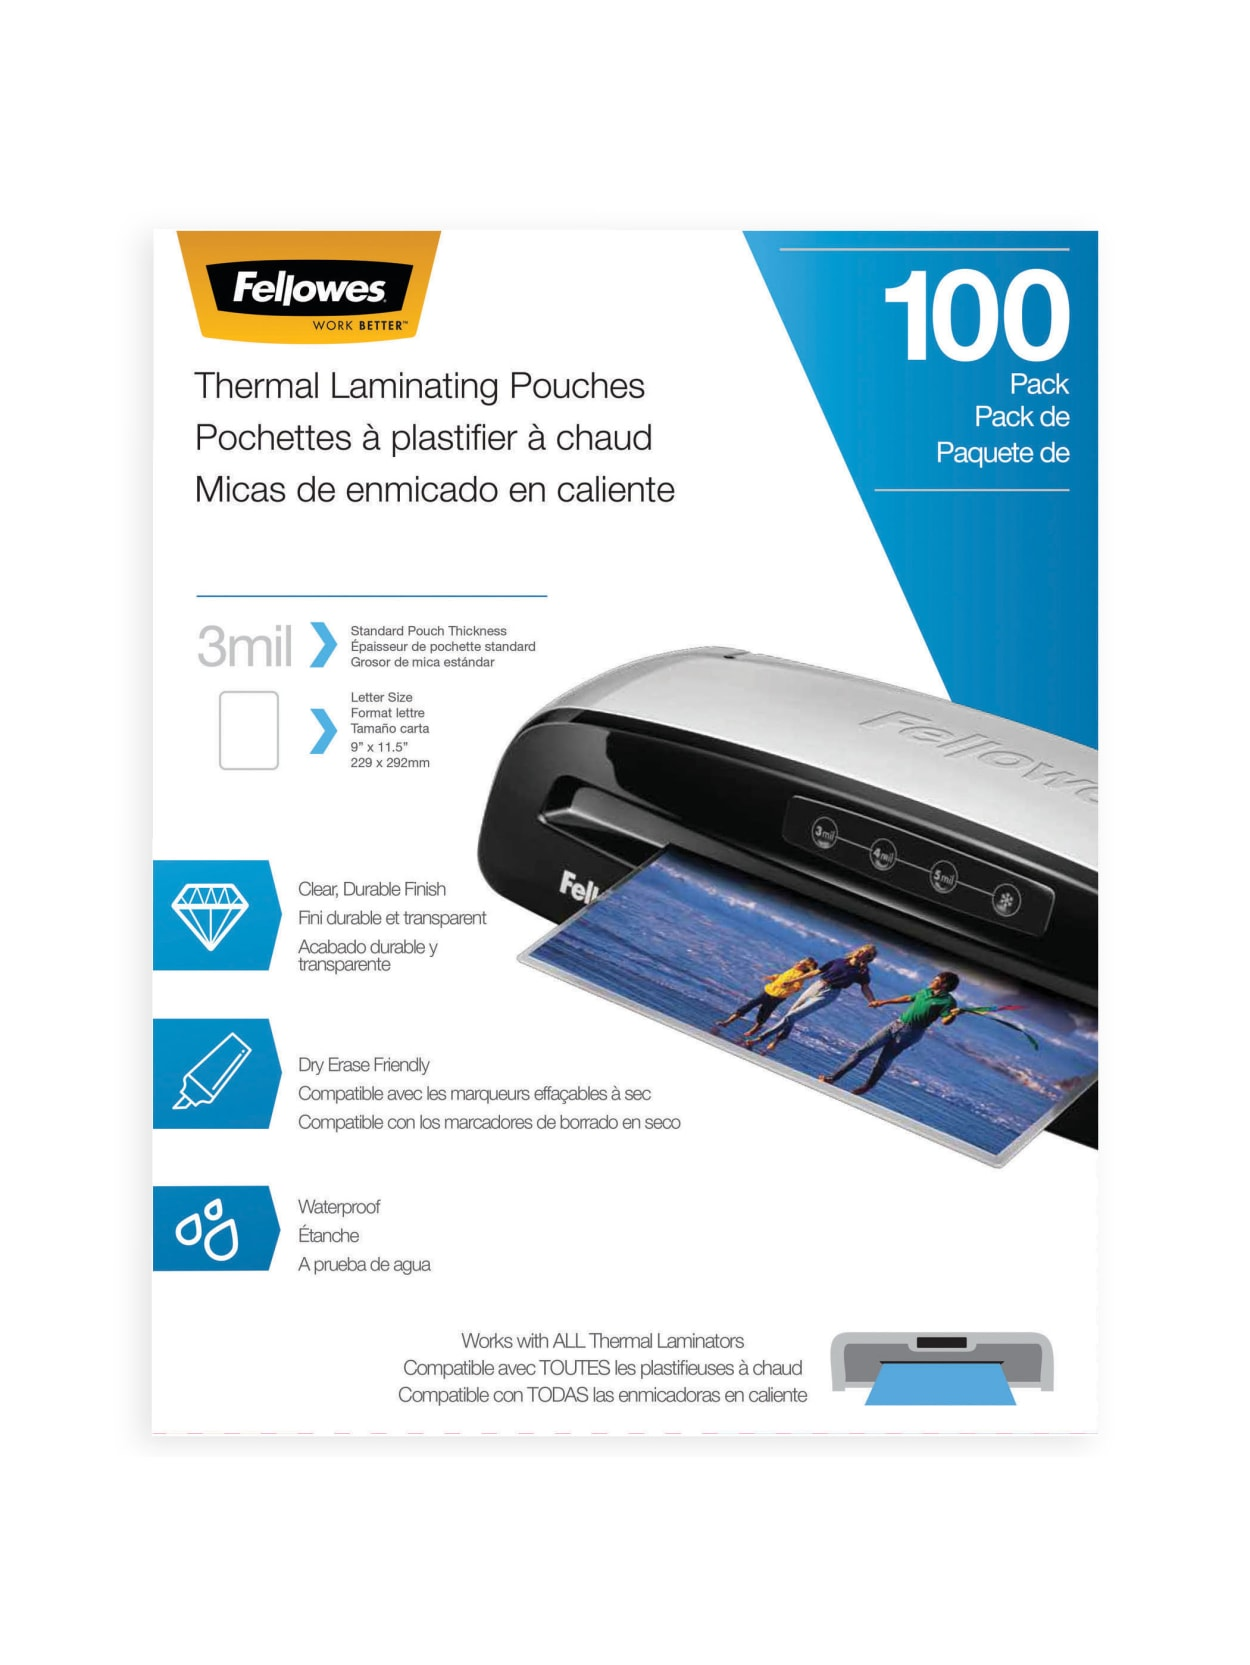 5mil Letter Size Sheets Fellowes Thermal Laminating Pouches 100pk 2 Pack